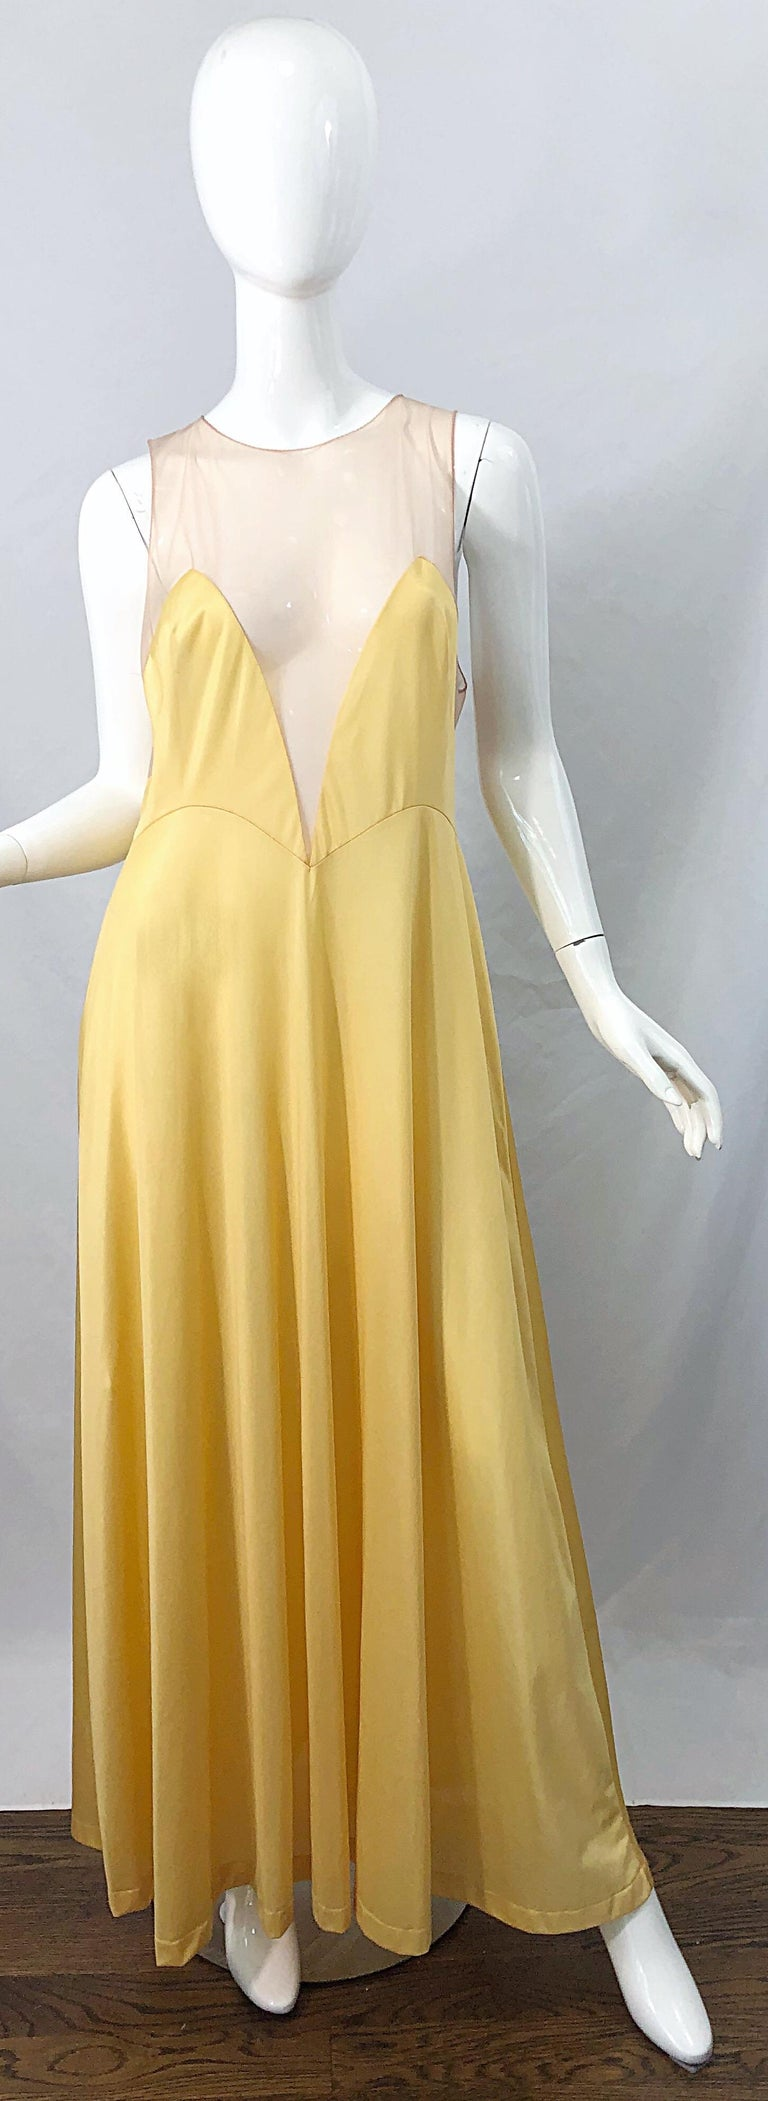 1970s Nude Sheer Caftan and Large Size Yellow Vintage 70s Nightgown Maxi Dress In Excellent Condition In Chicago, IL